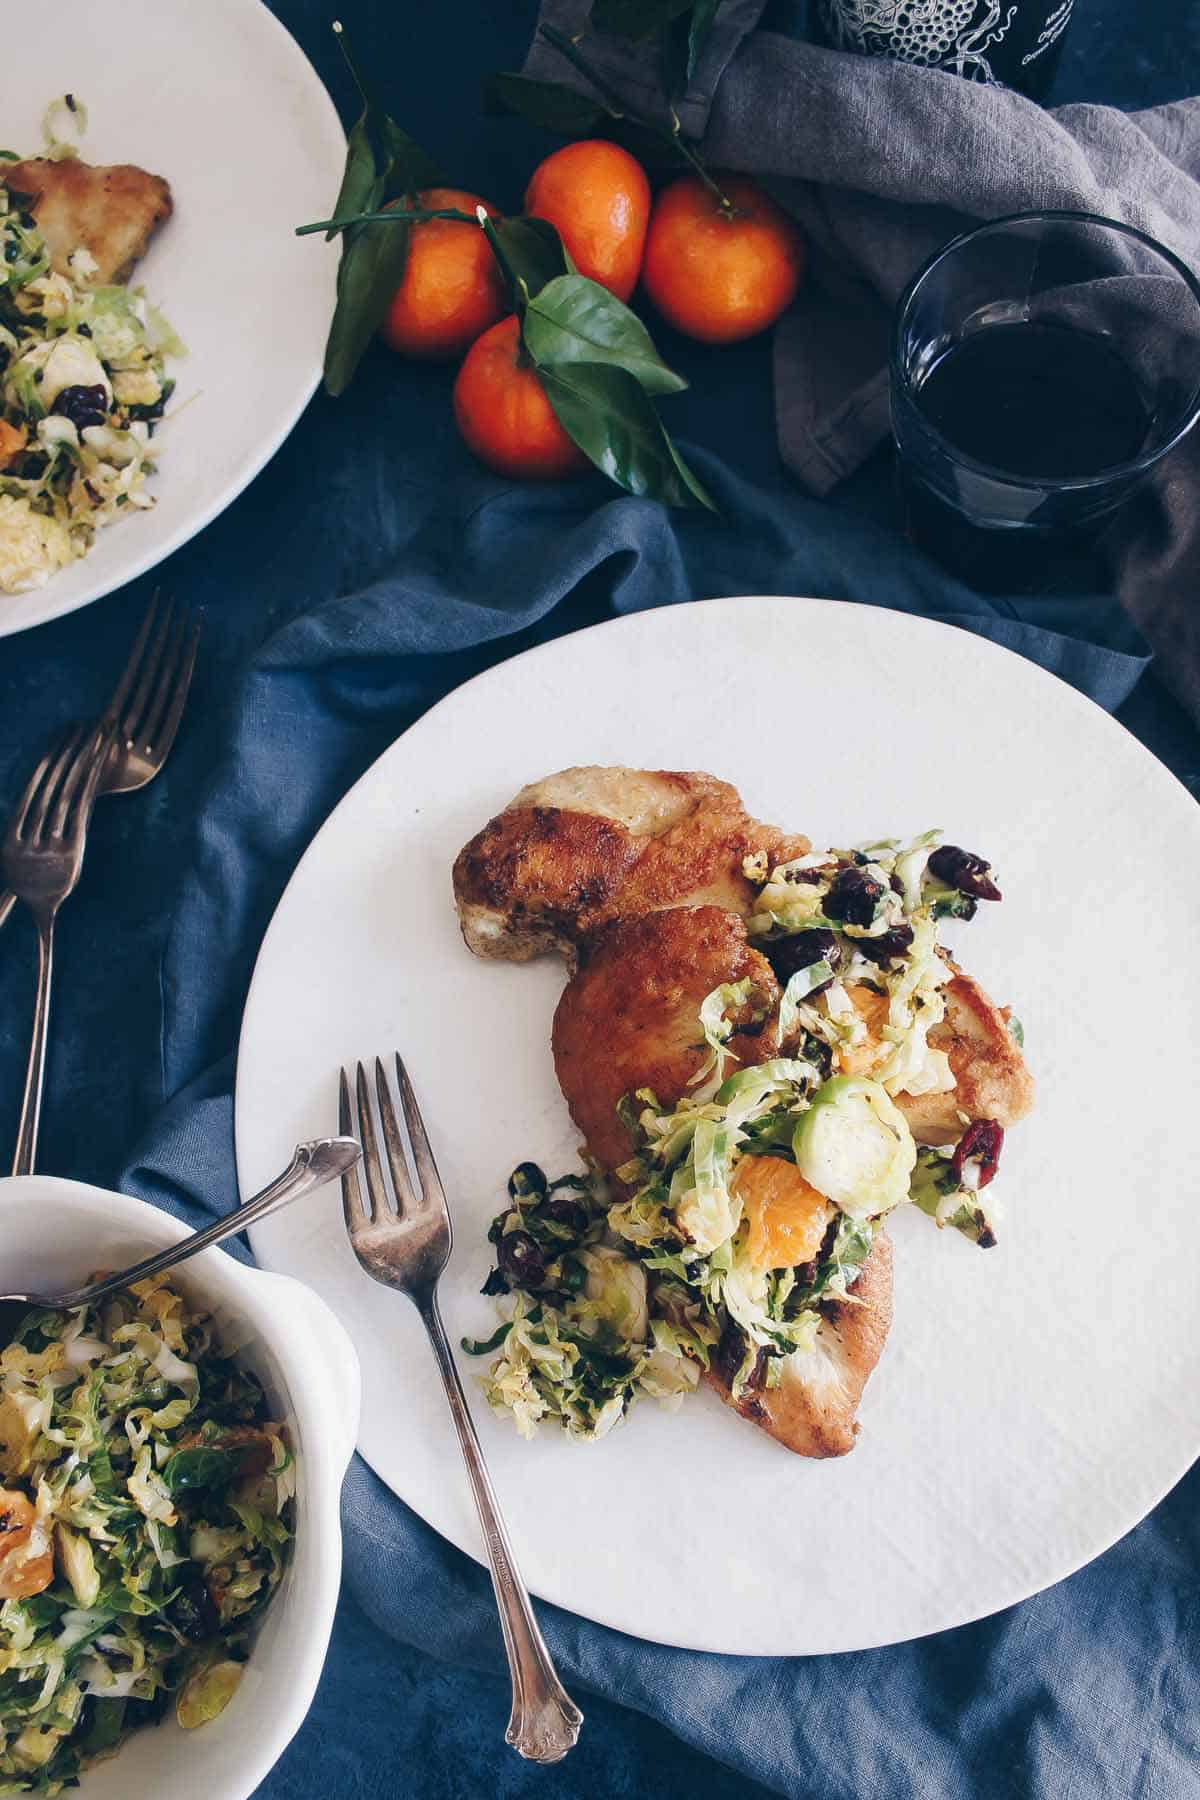 This quick 30 minute meal is just as elegant as it is nutritious. Pan seared chicken gets topped with Brussels sprouts slaw with oranges and cranberries. Paleo friendly!